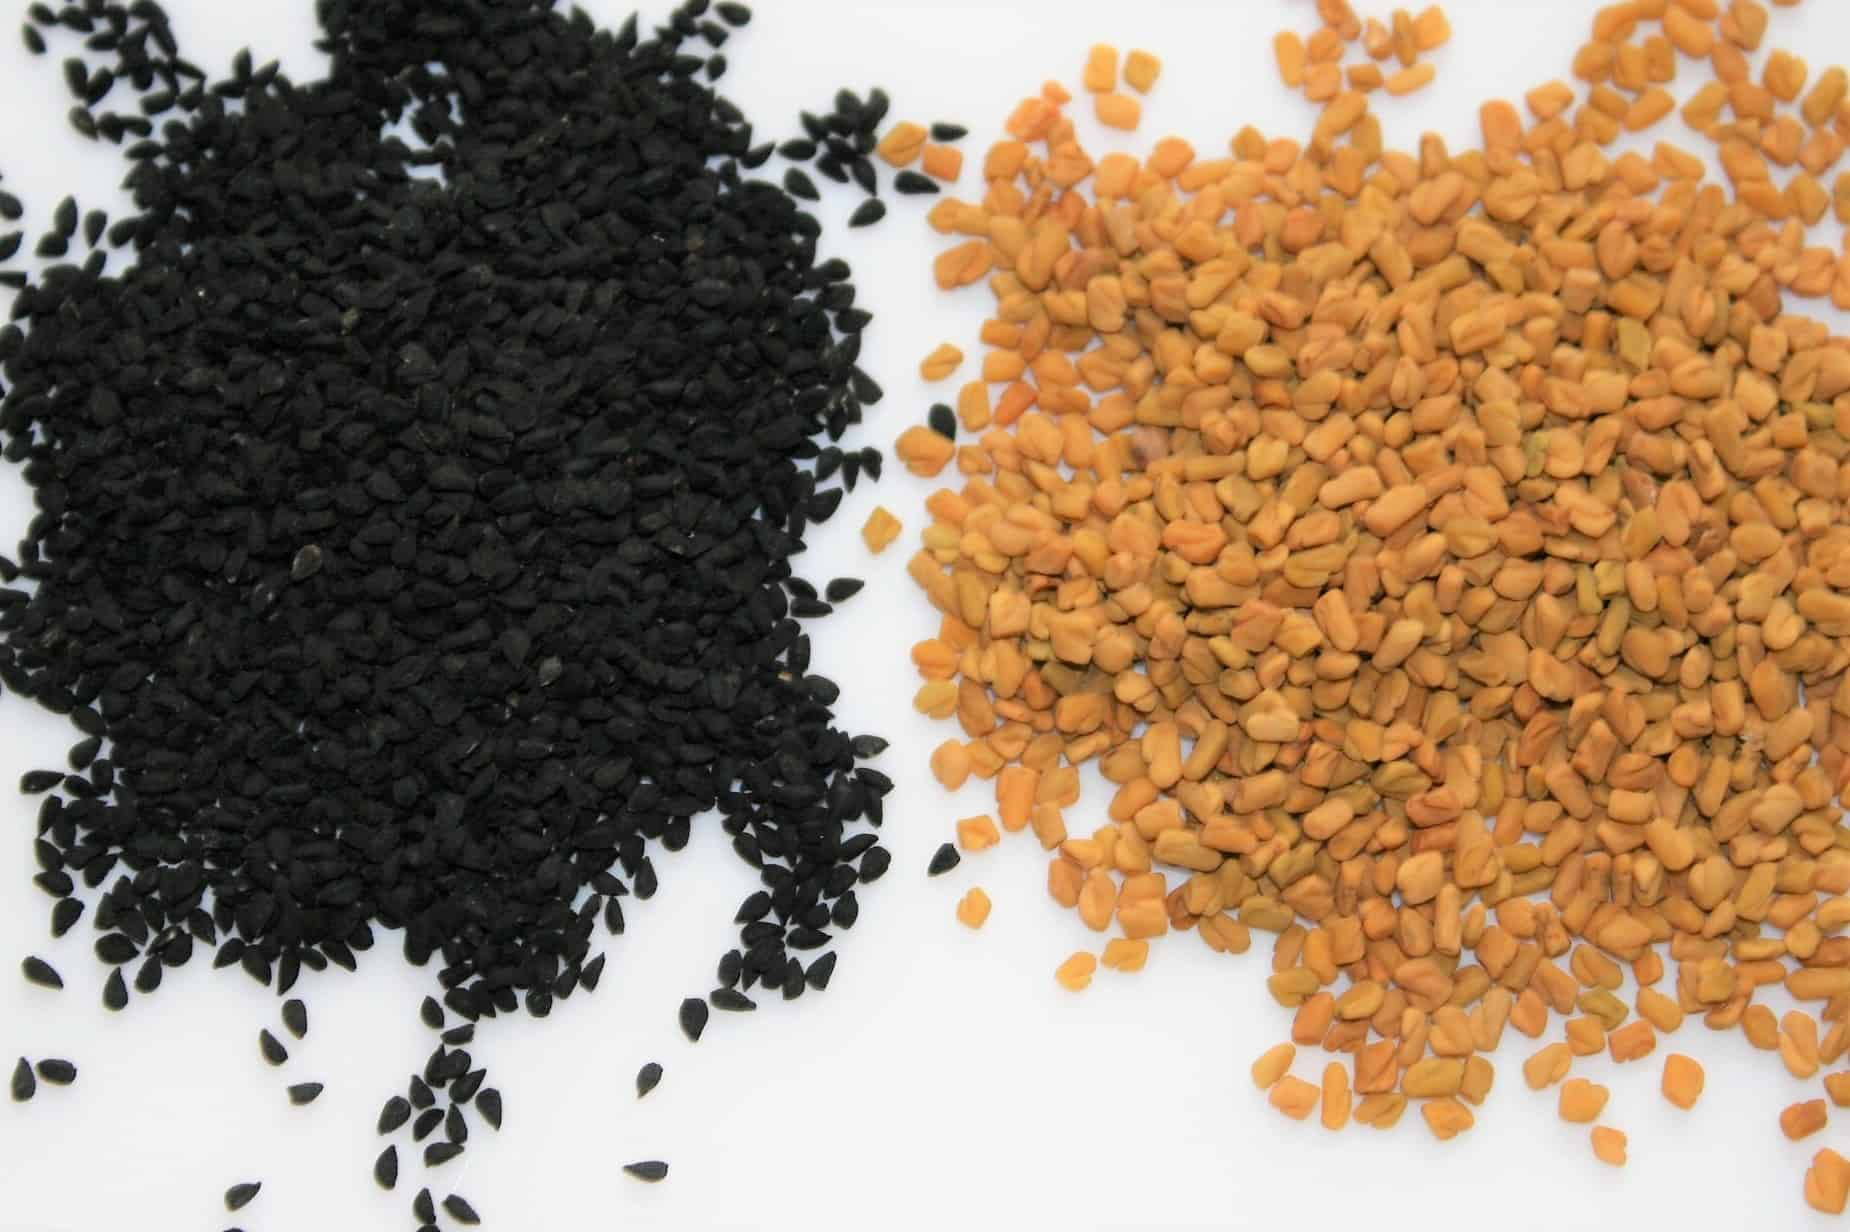 Black seeds and fenugreek seeds